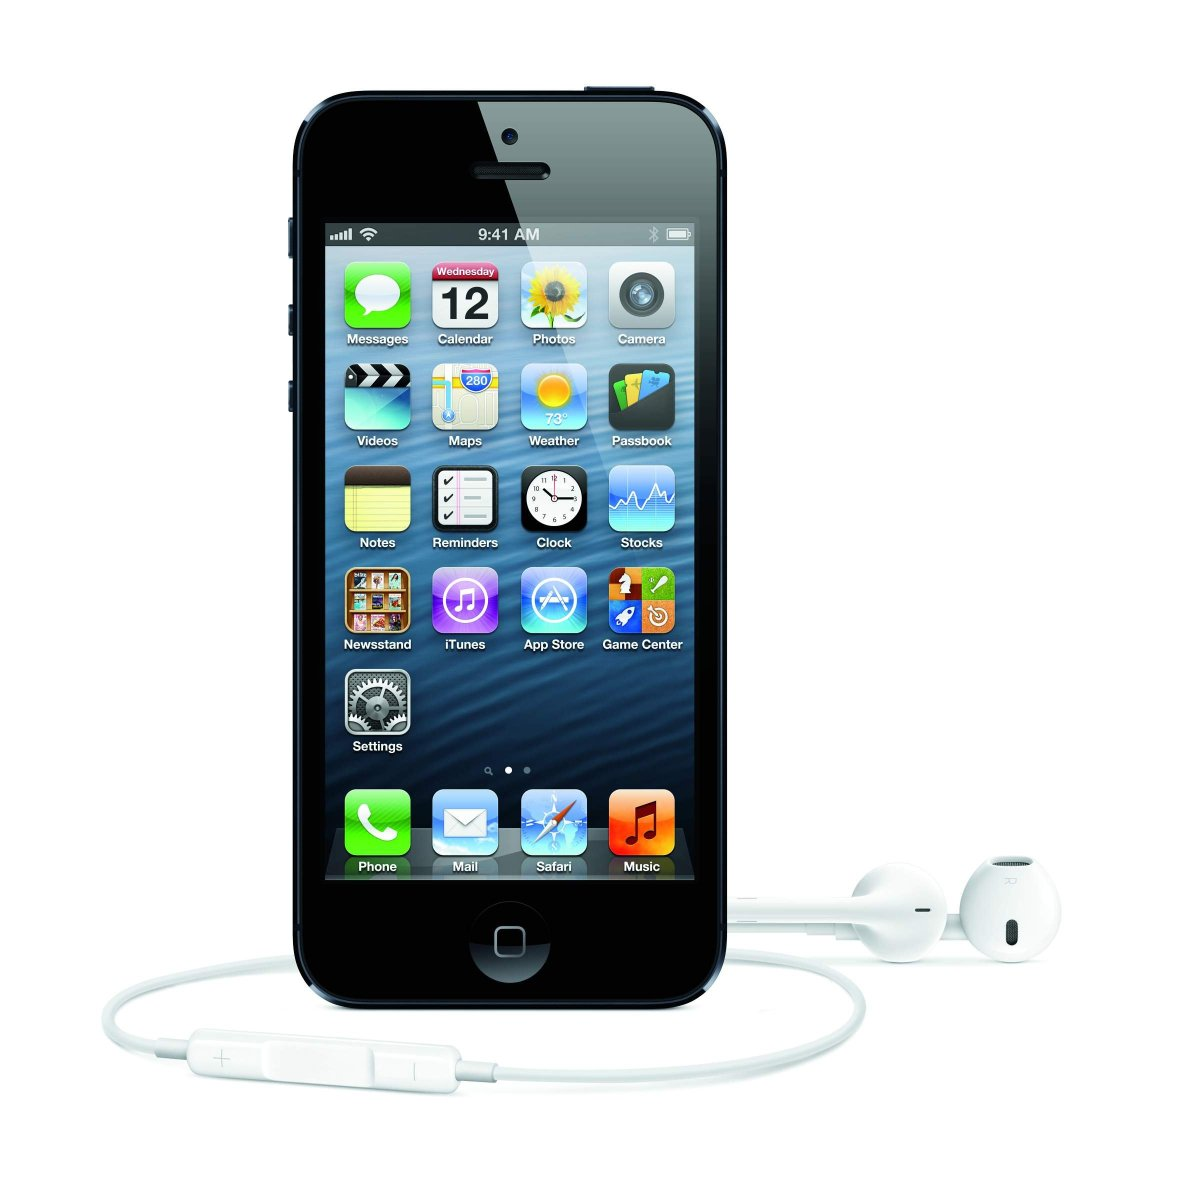 Apple continues reign in technology with iPhone 5